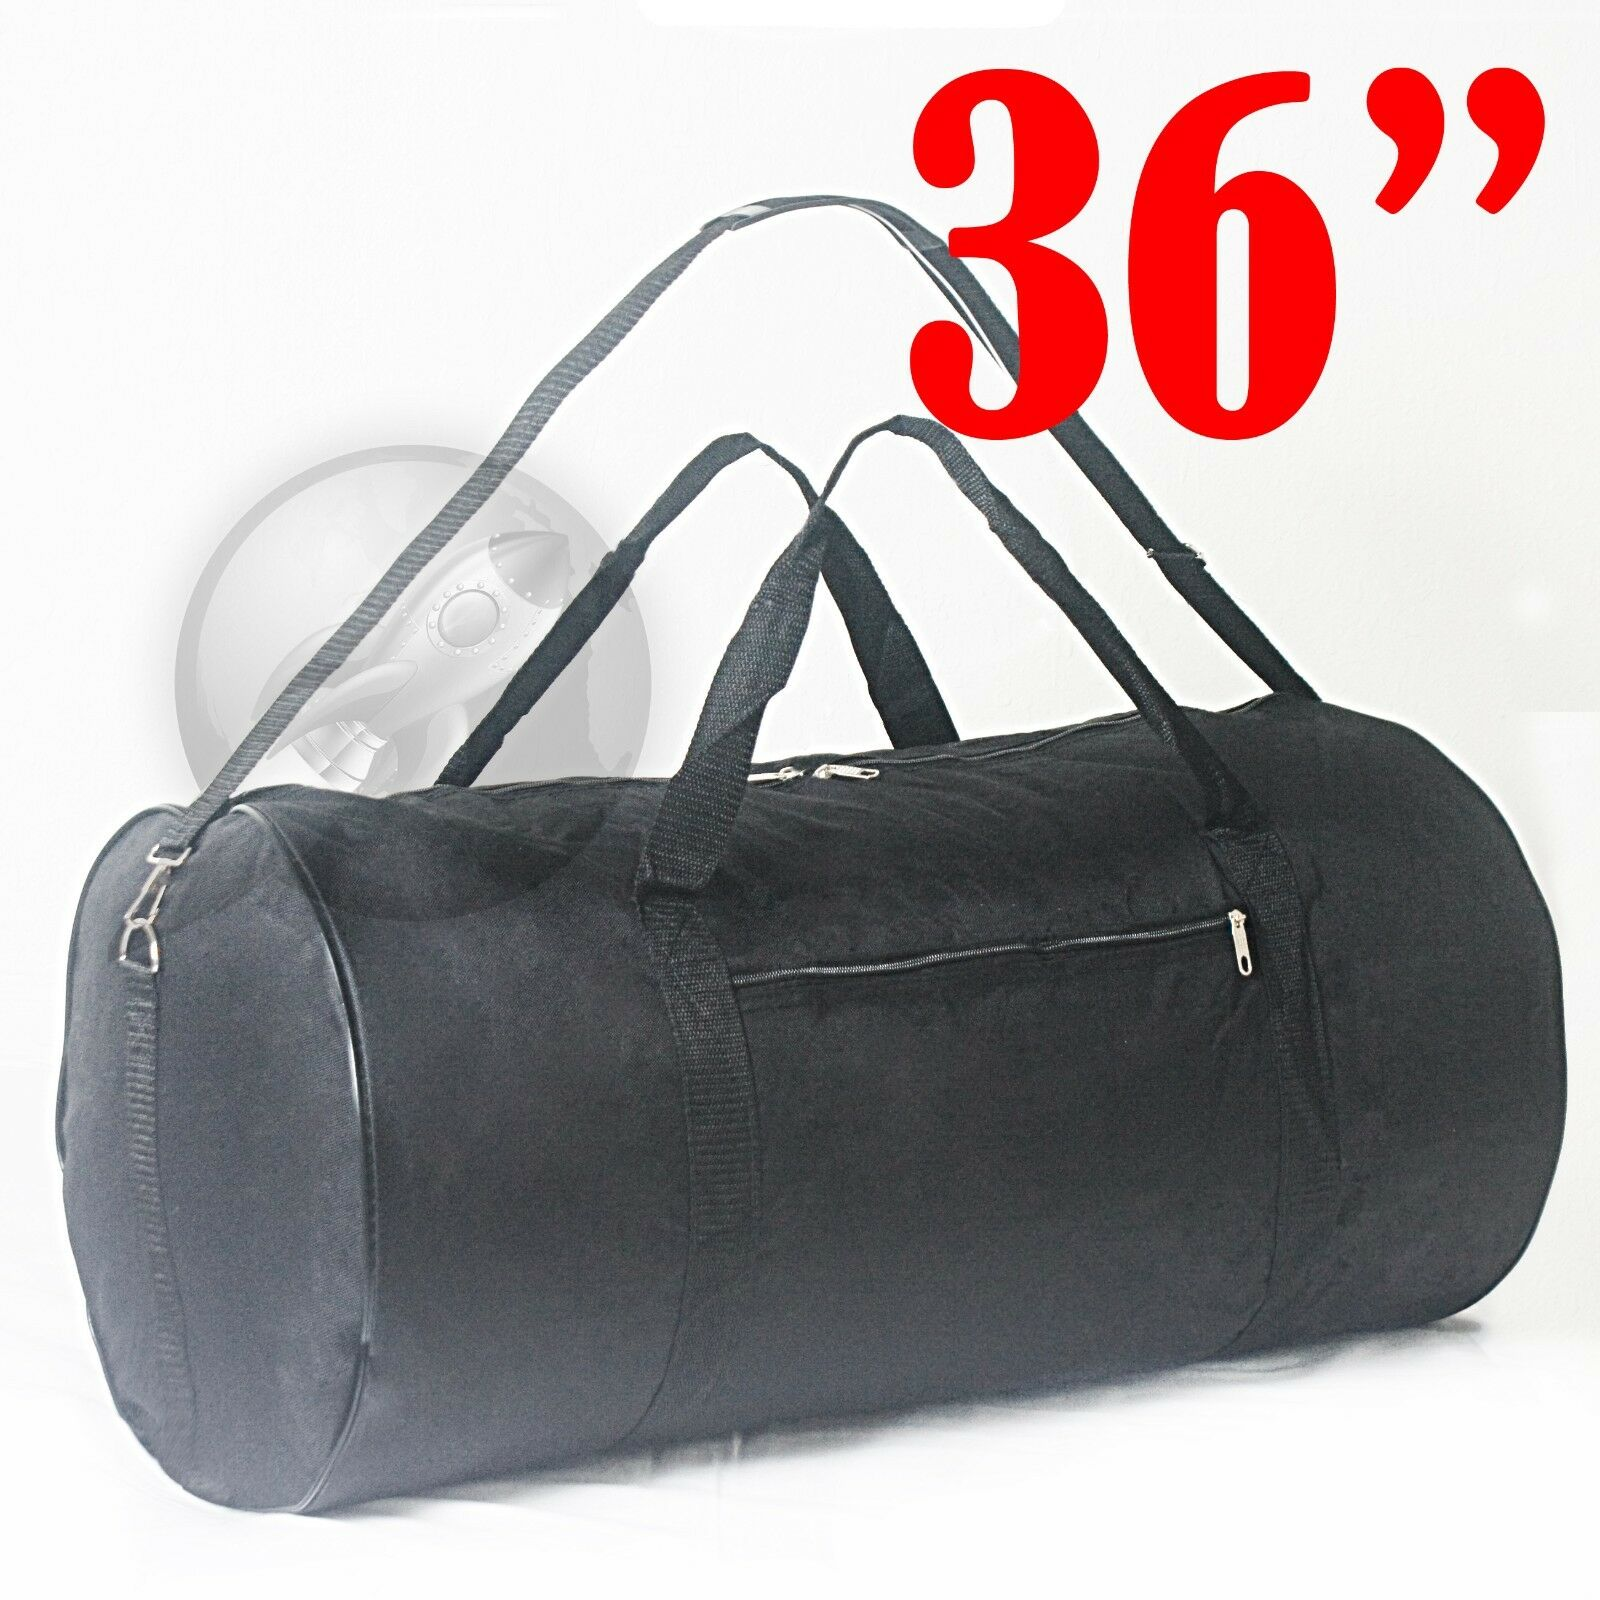 Details about Lot of 2 Luggage Travel Roll Duffle Bags 36